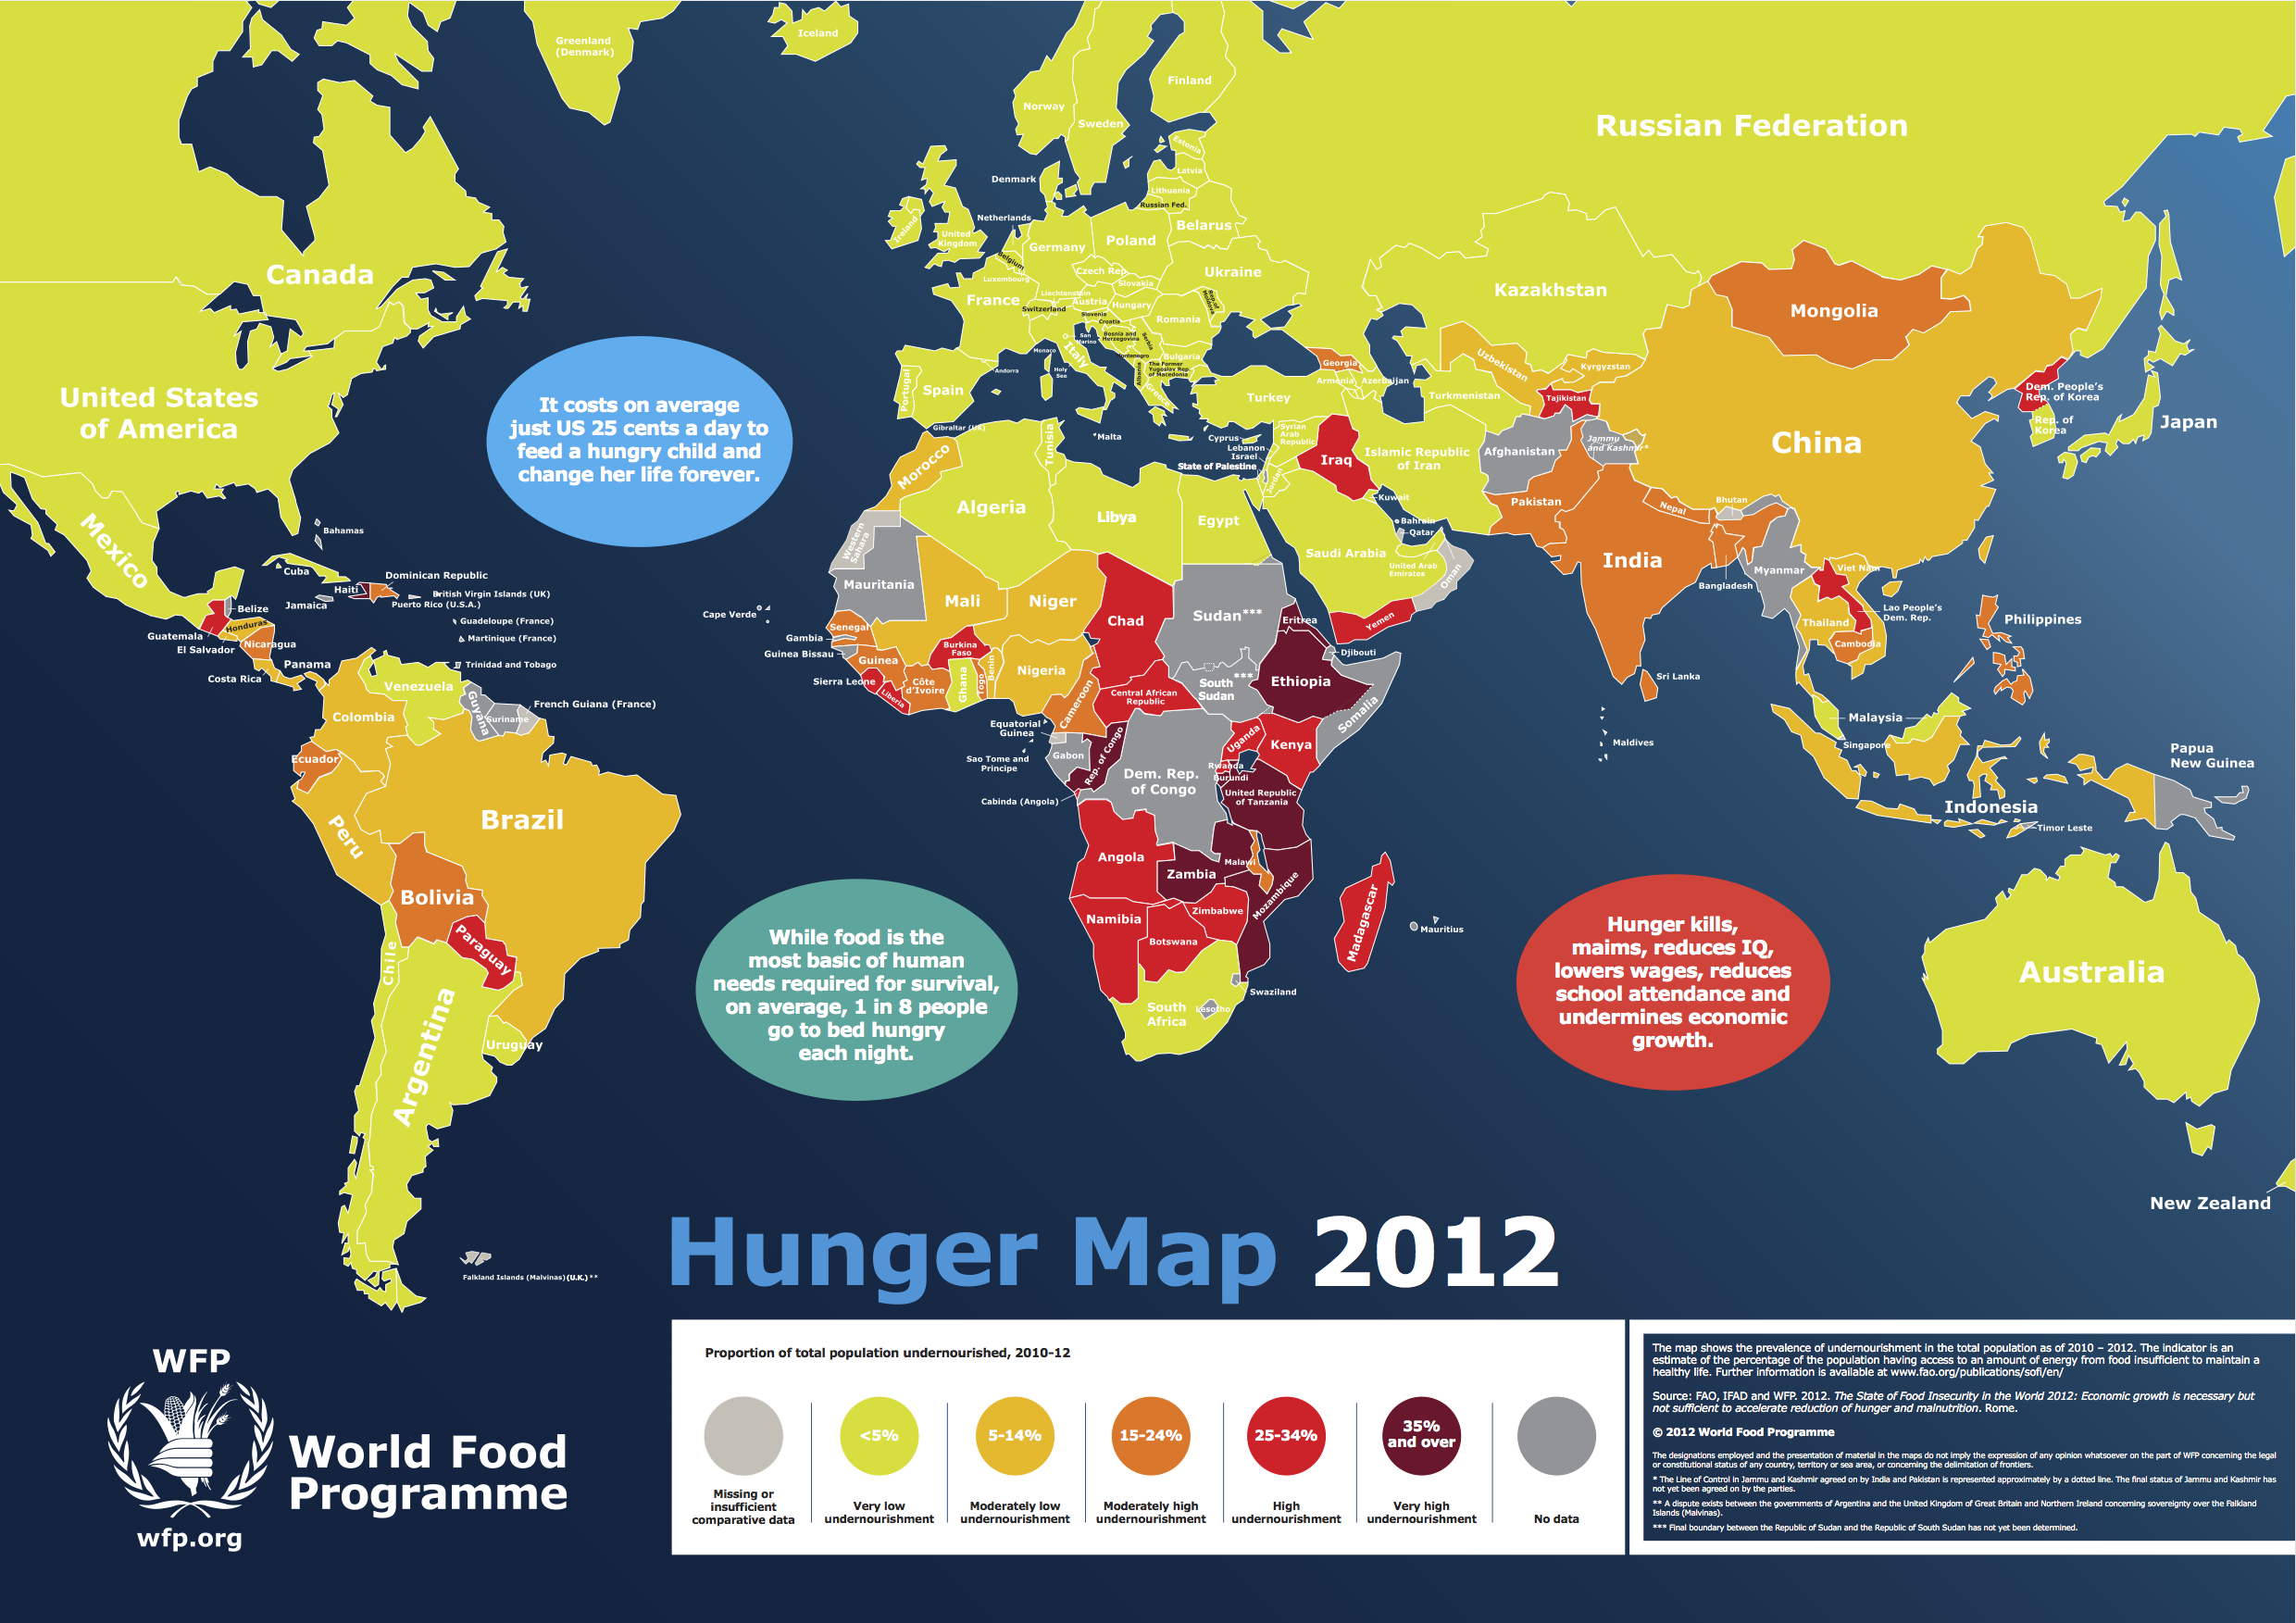 causes and effects of world hunger The number of under-fed people has steadily climbed over the past decade now, the world food programme estimates that the crisis has driven another 100 million people into hunger, including even urban middle class people in indonesia and mexico.